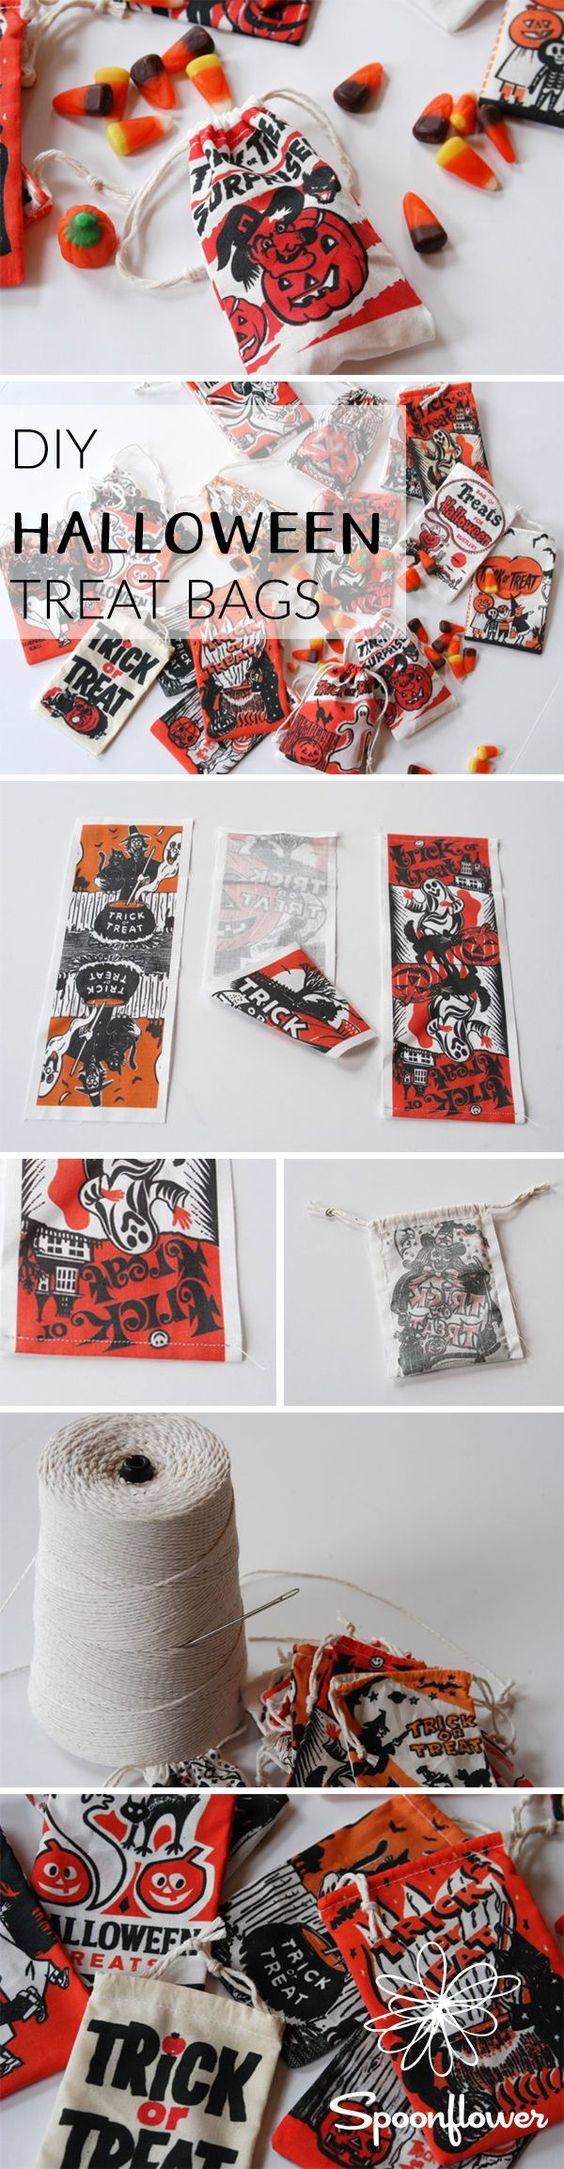 Cut and sew Halloween treat bags that are easy and fun to make!